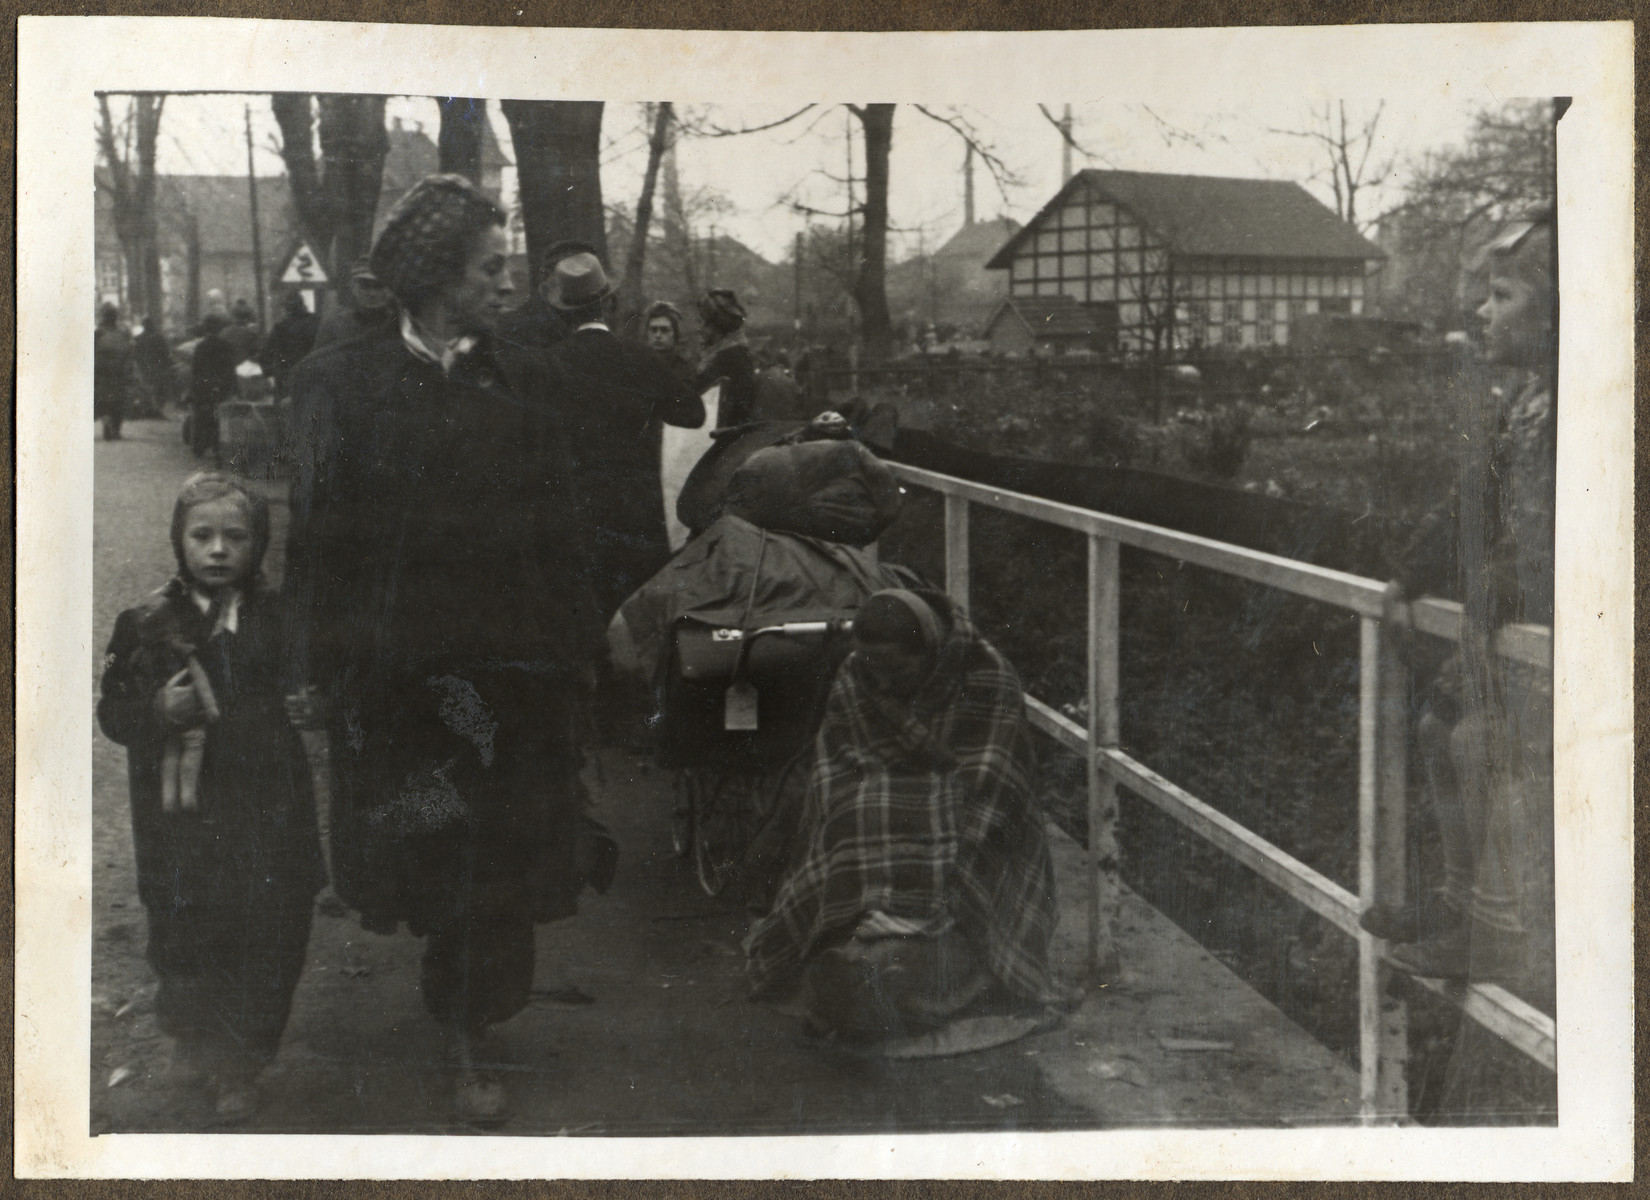 Ethnic German women cross the Elbe River into Germany after their expulsion from Eastern Europe.